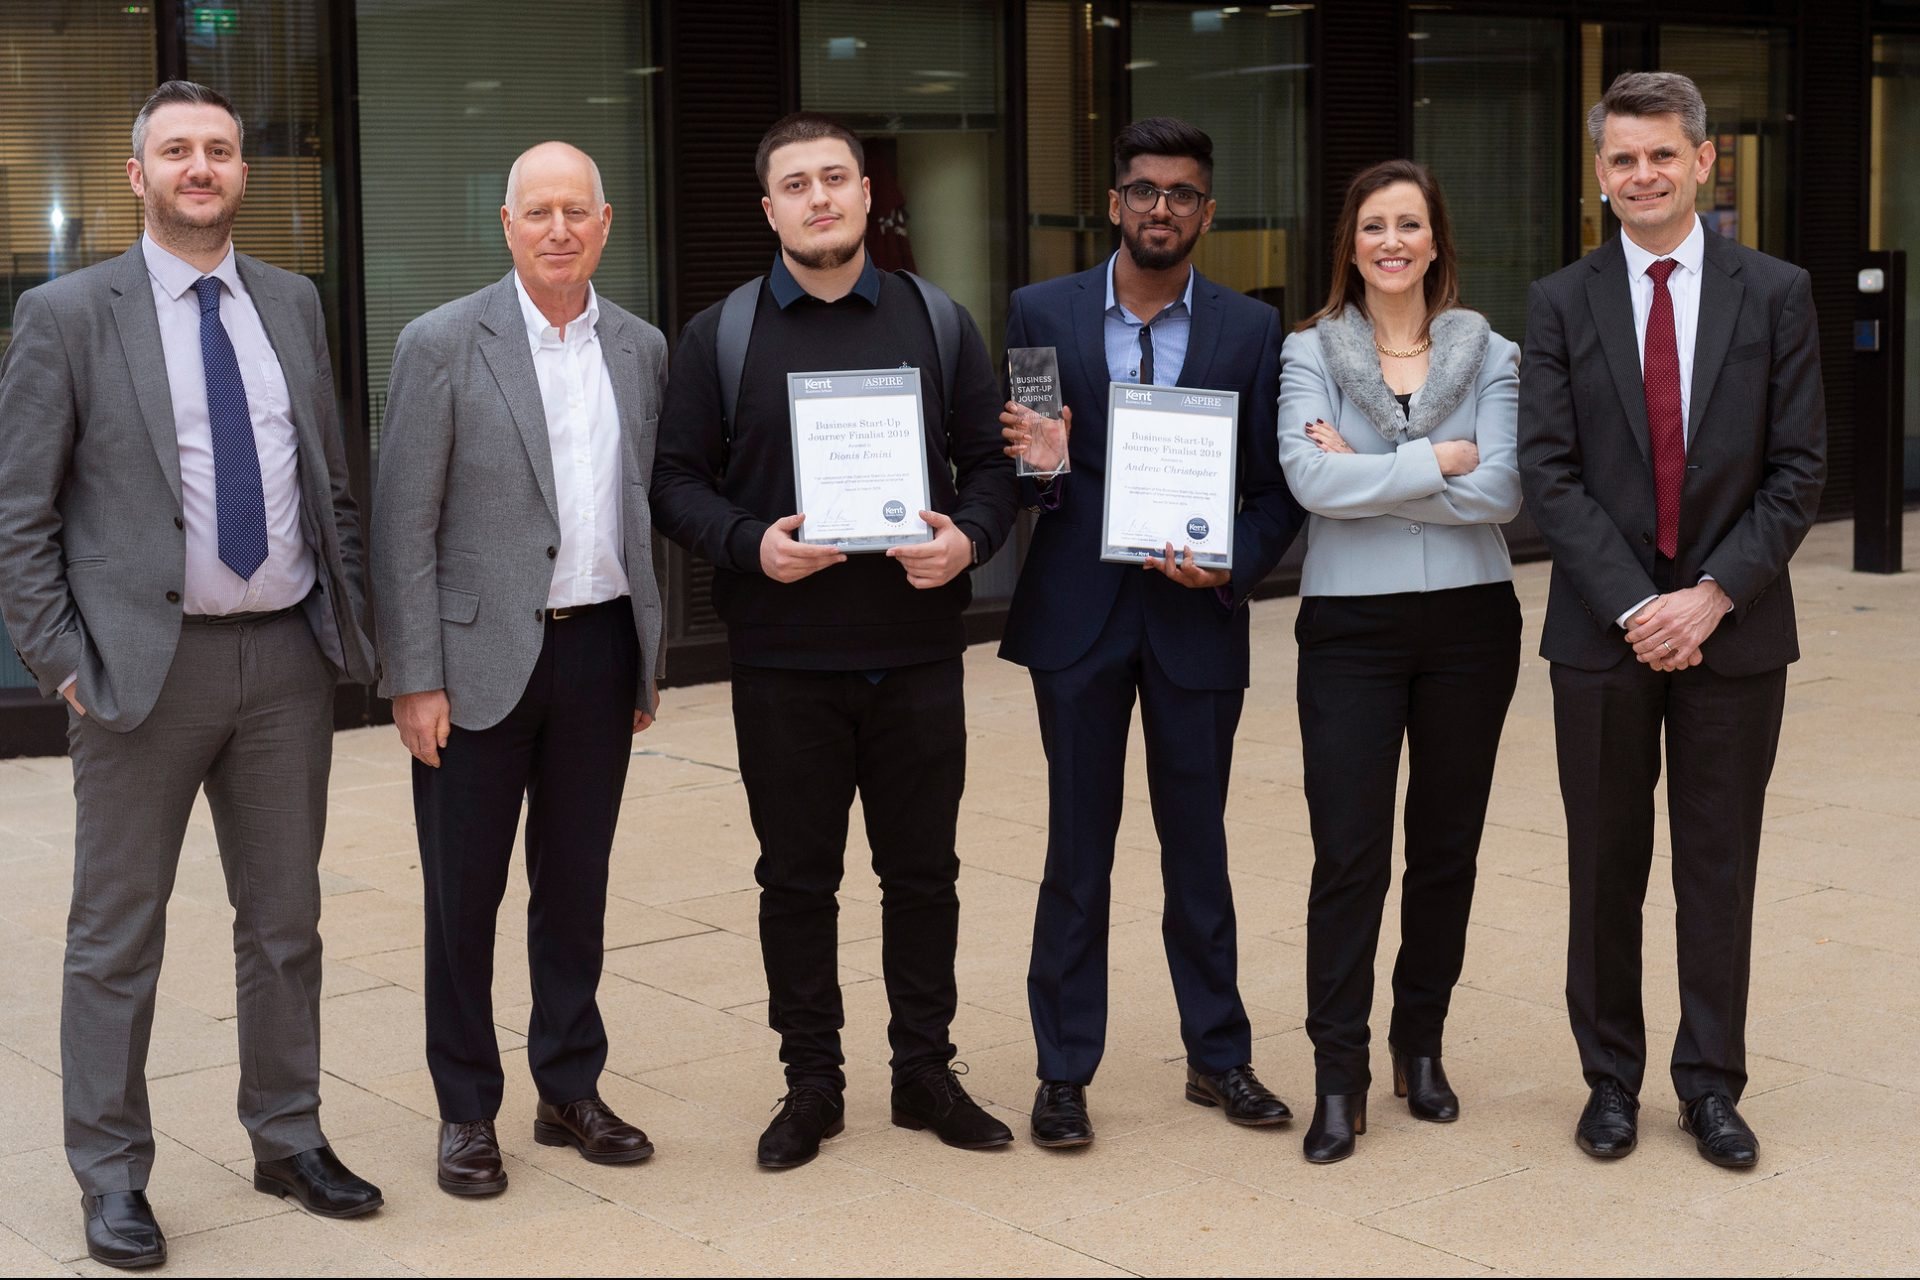 LDrive were the winners of the BSUJ competition